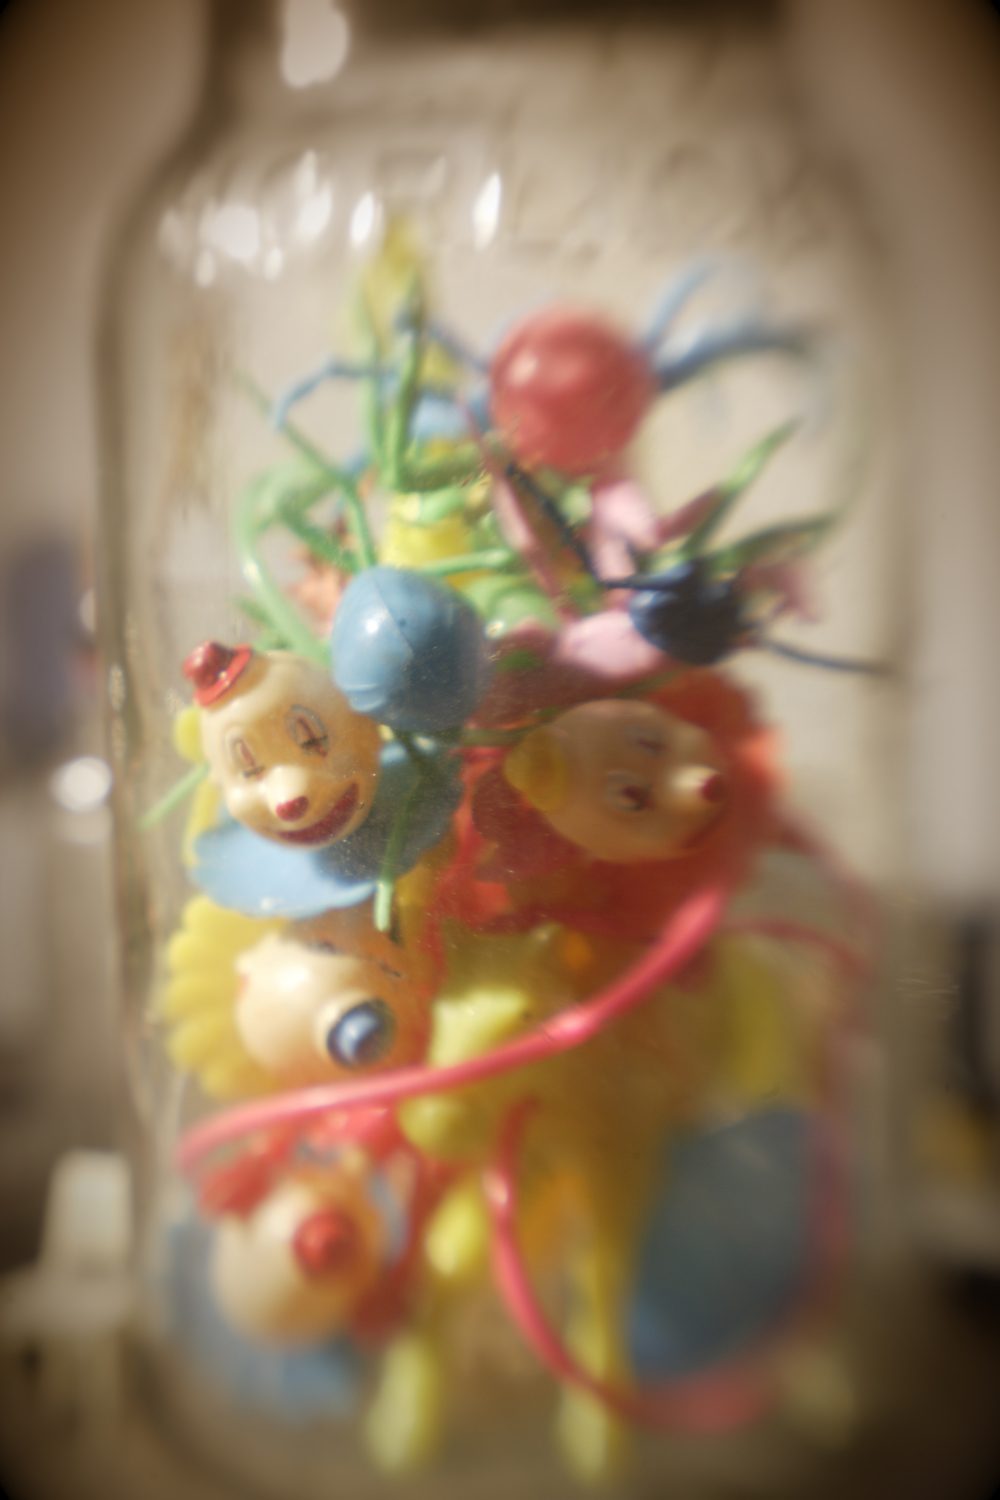 Clowns in a Jar